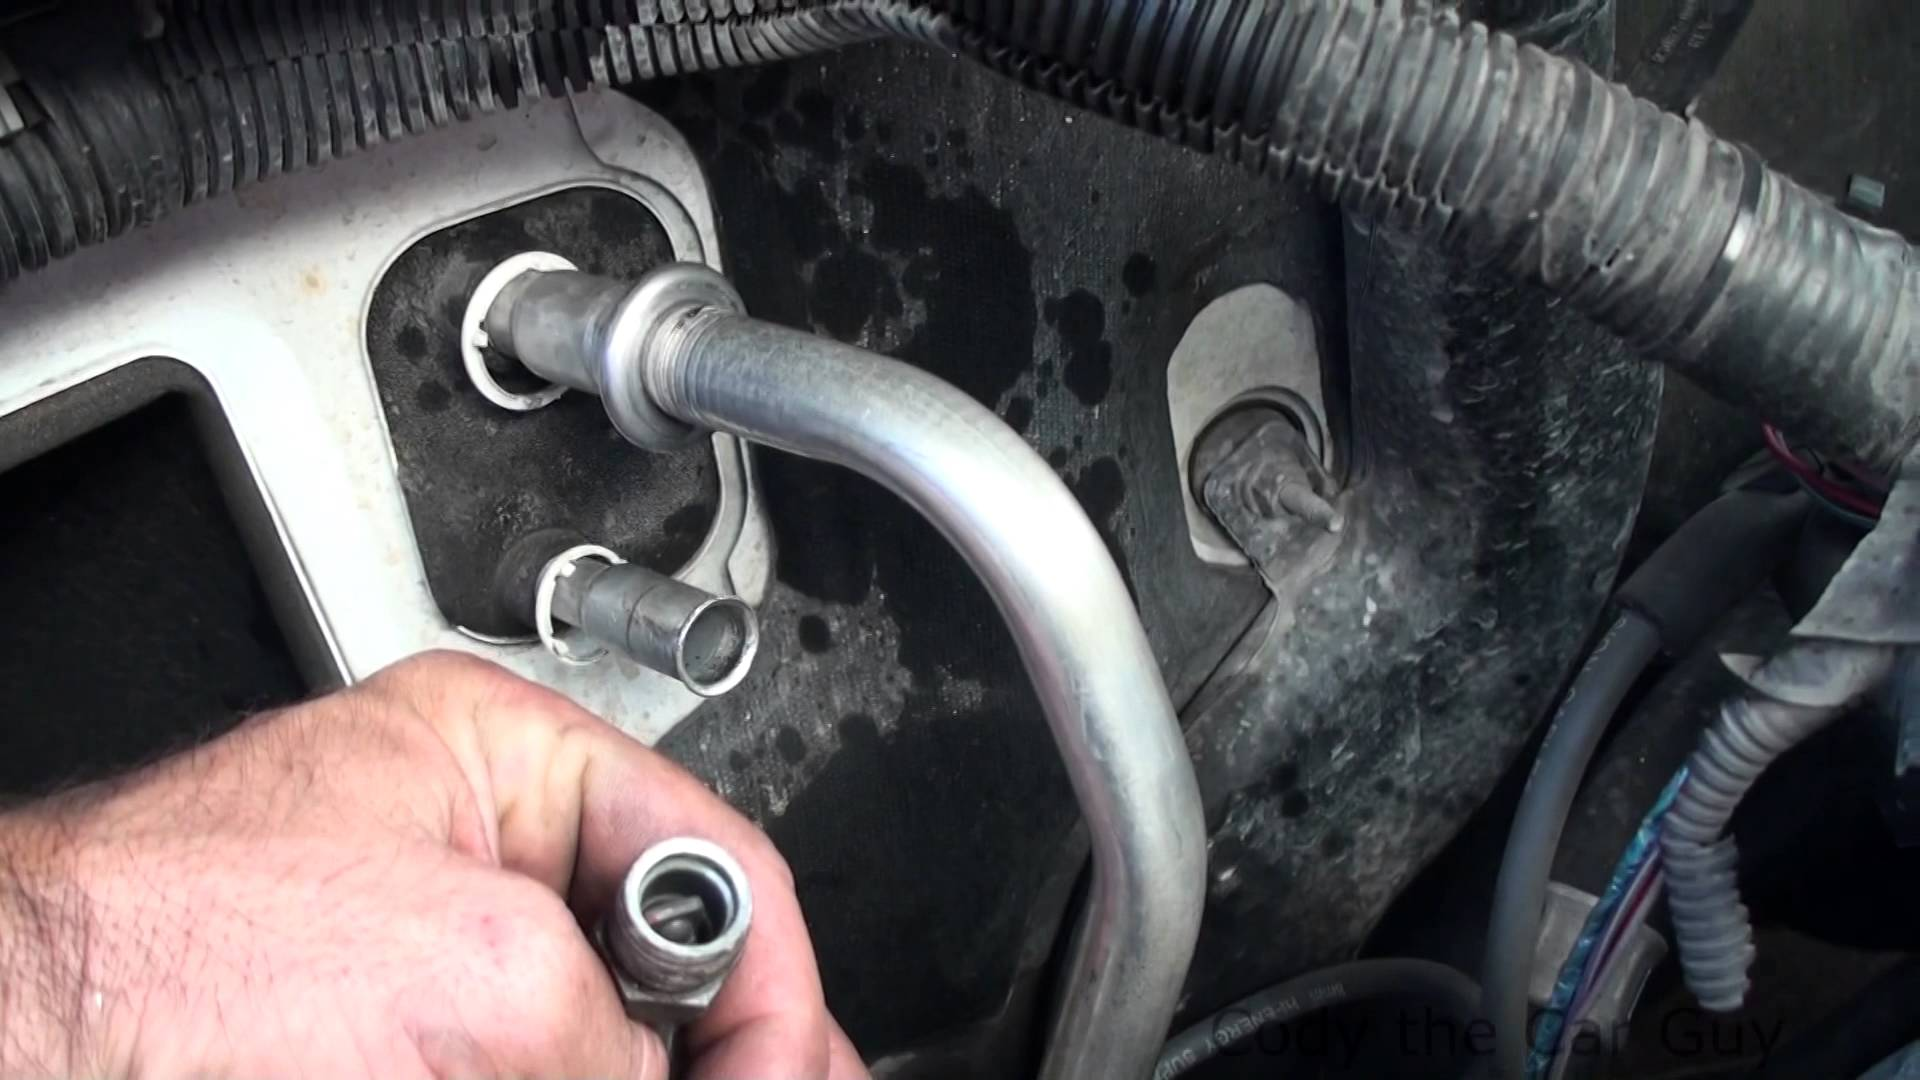 The 5 Reasons Why Your Vehicles Ac Leaks Water F250 Fuel Filter Drain Leak Blockage In Condensate Pipe